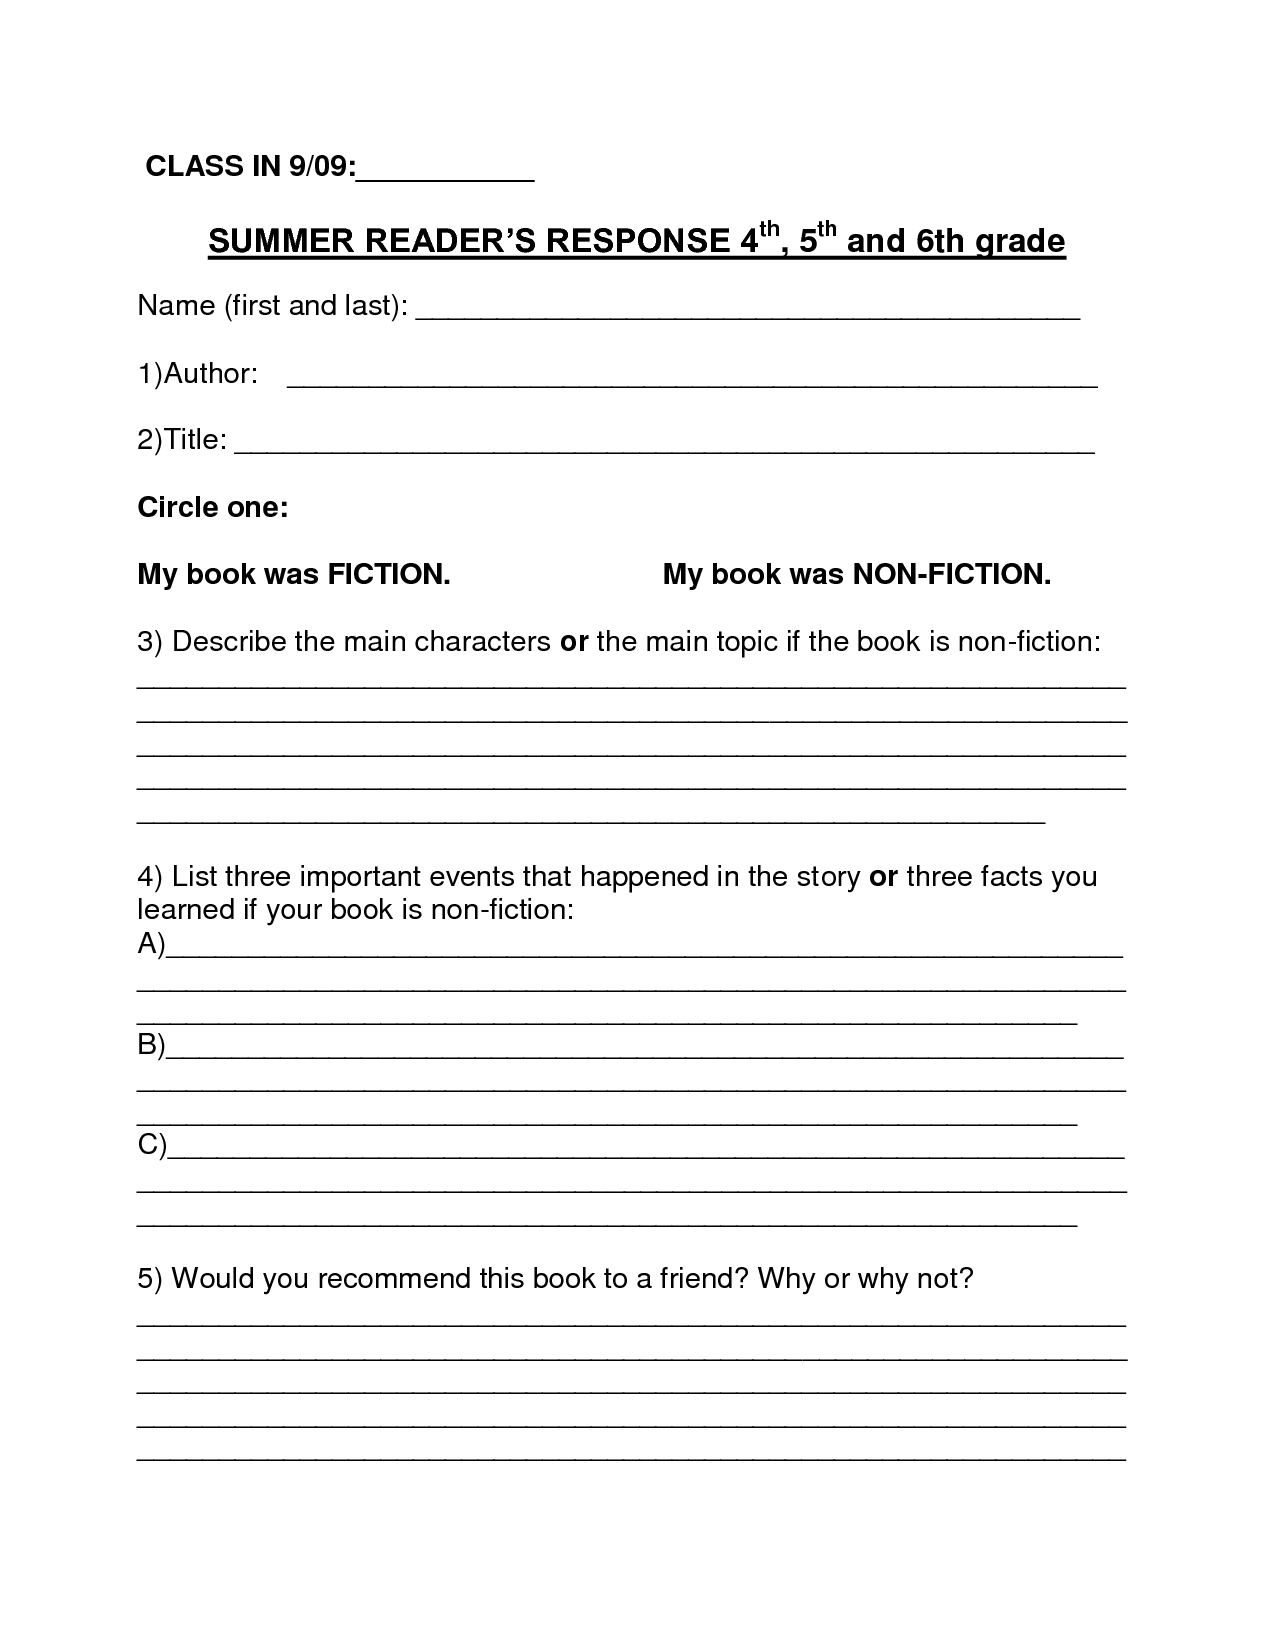 Book Report Template | Summer Book Report 4Th -6Th Grade - Download - Free Printable Summarizing Worksheets 4Th Grade